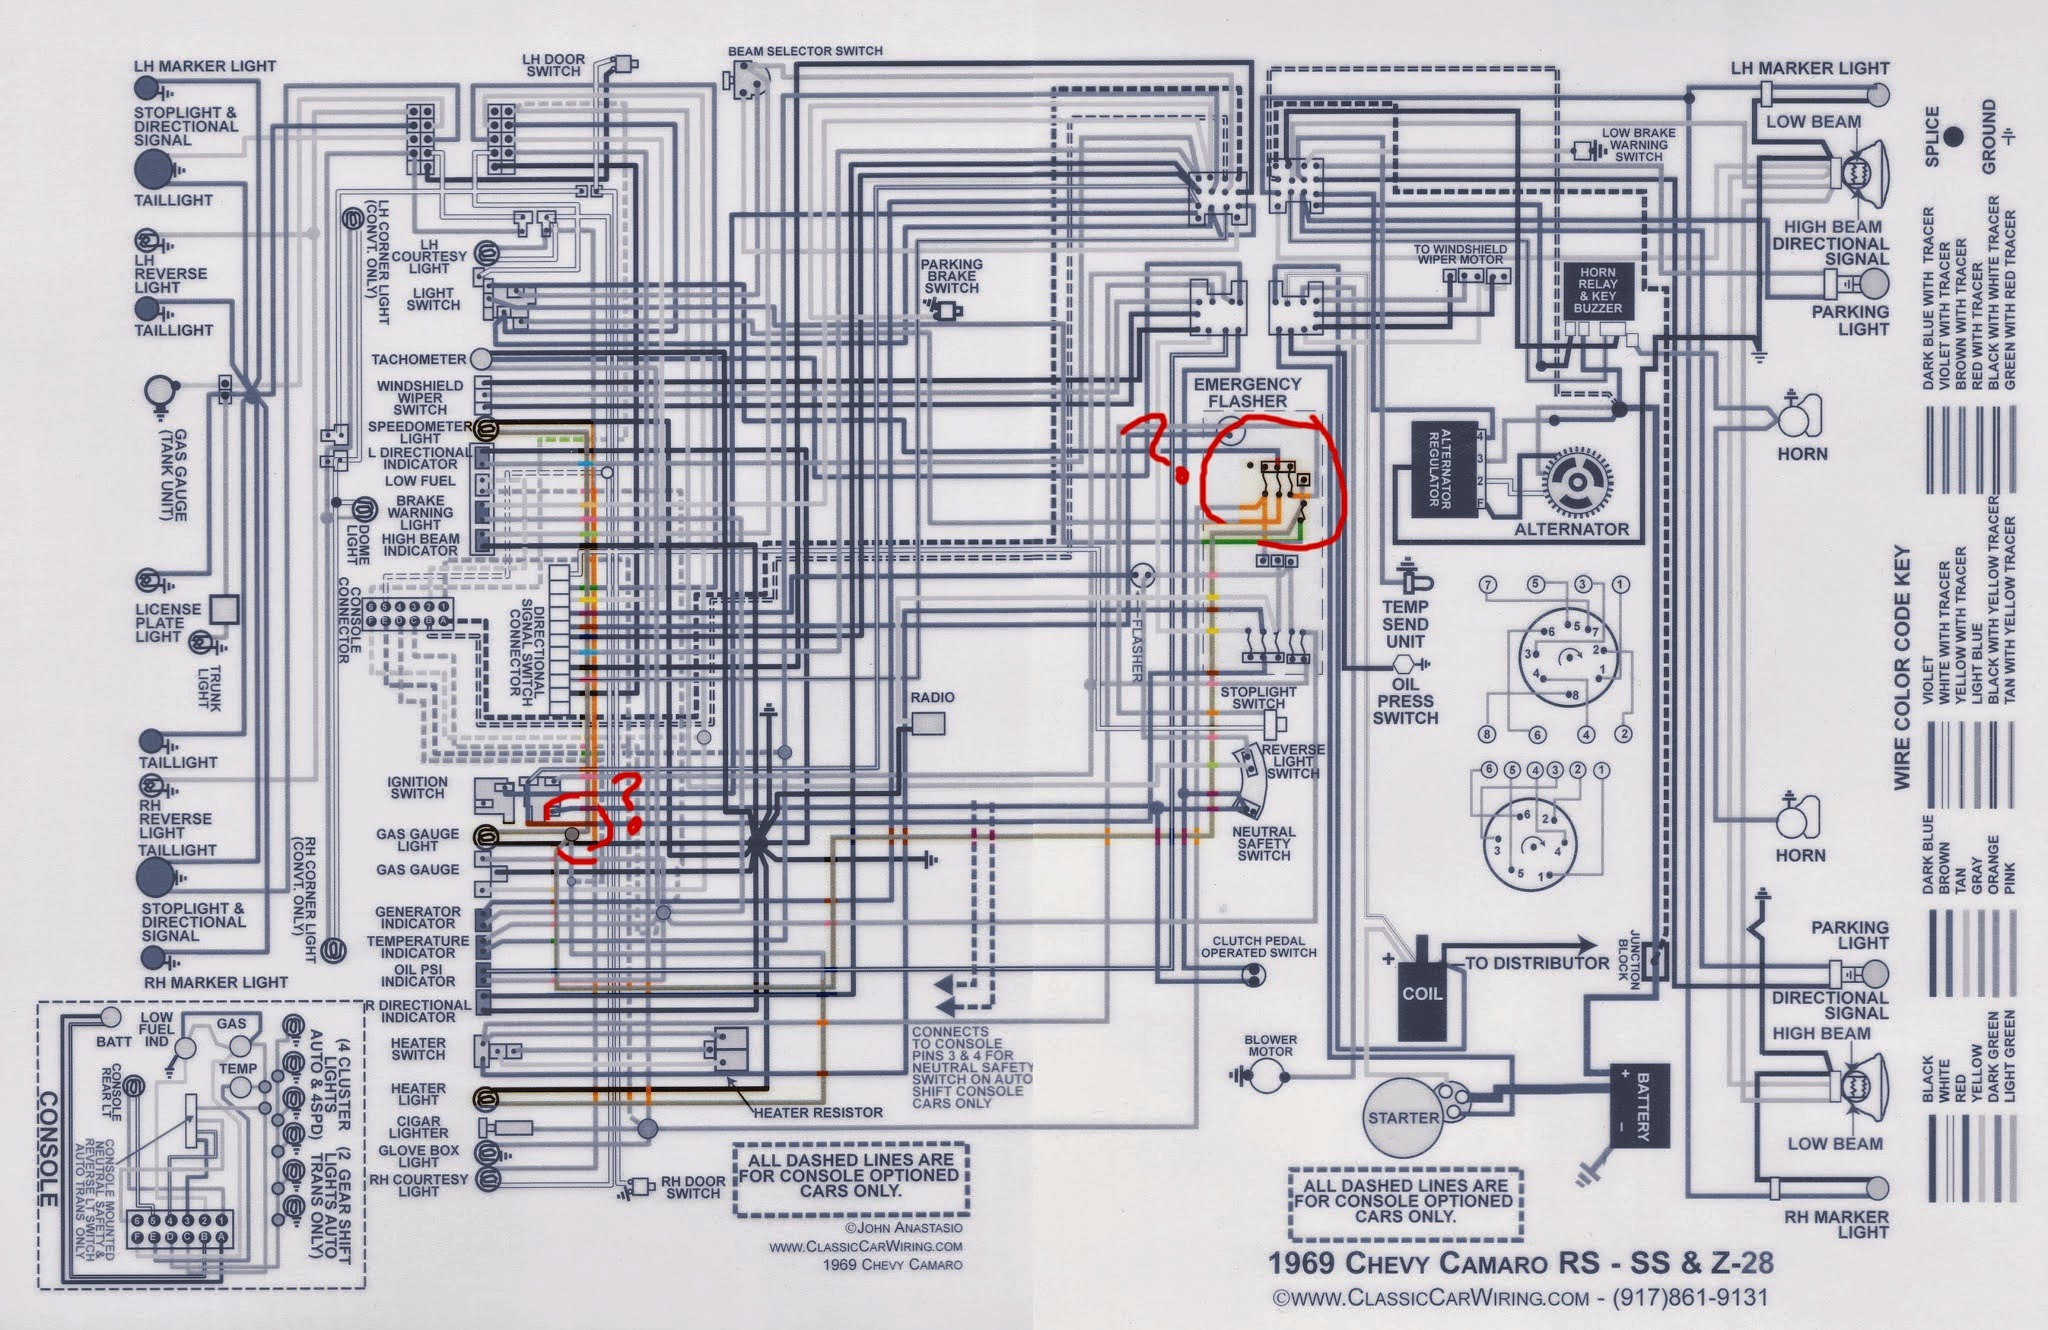 1969 Camaro Heater Wiring - Library Of Wiring Diagram •